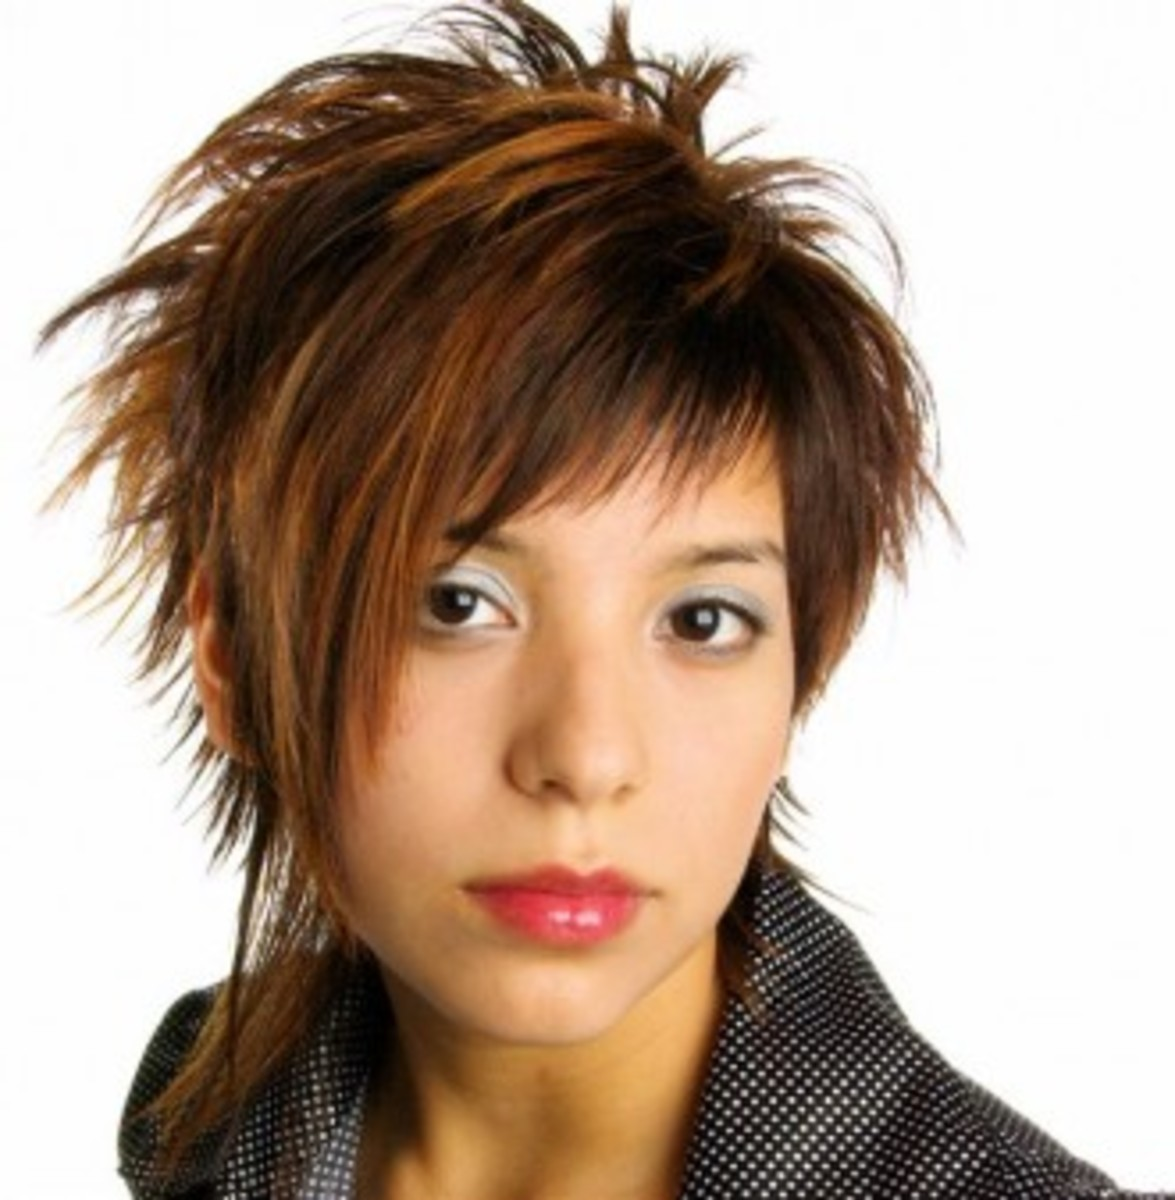 pictures of short layered hairstyles. Short Layered Hairstyles